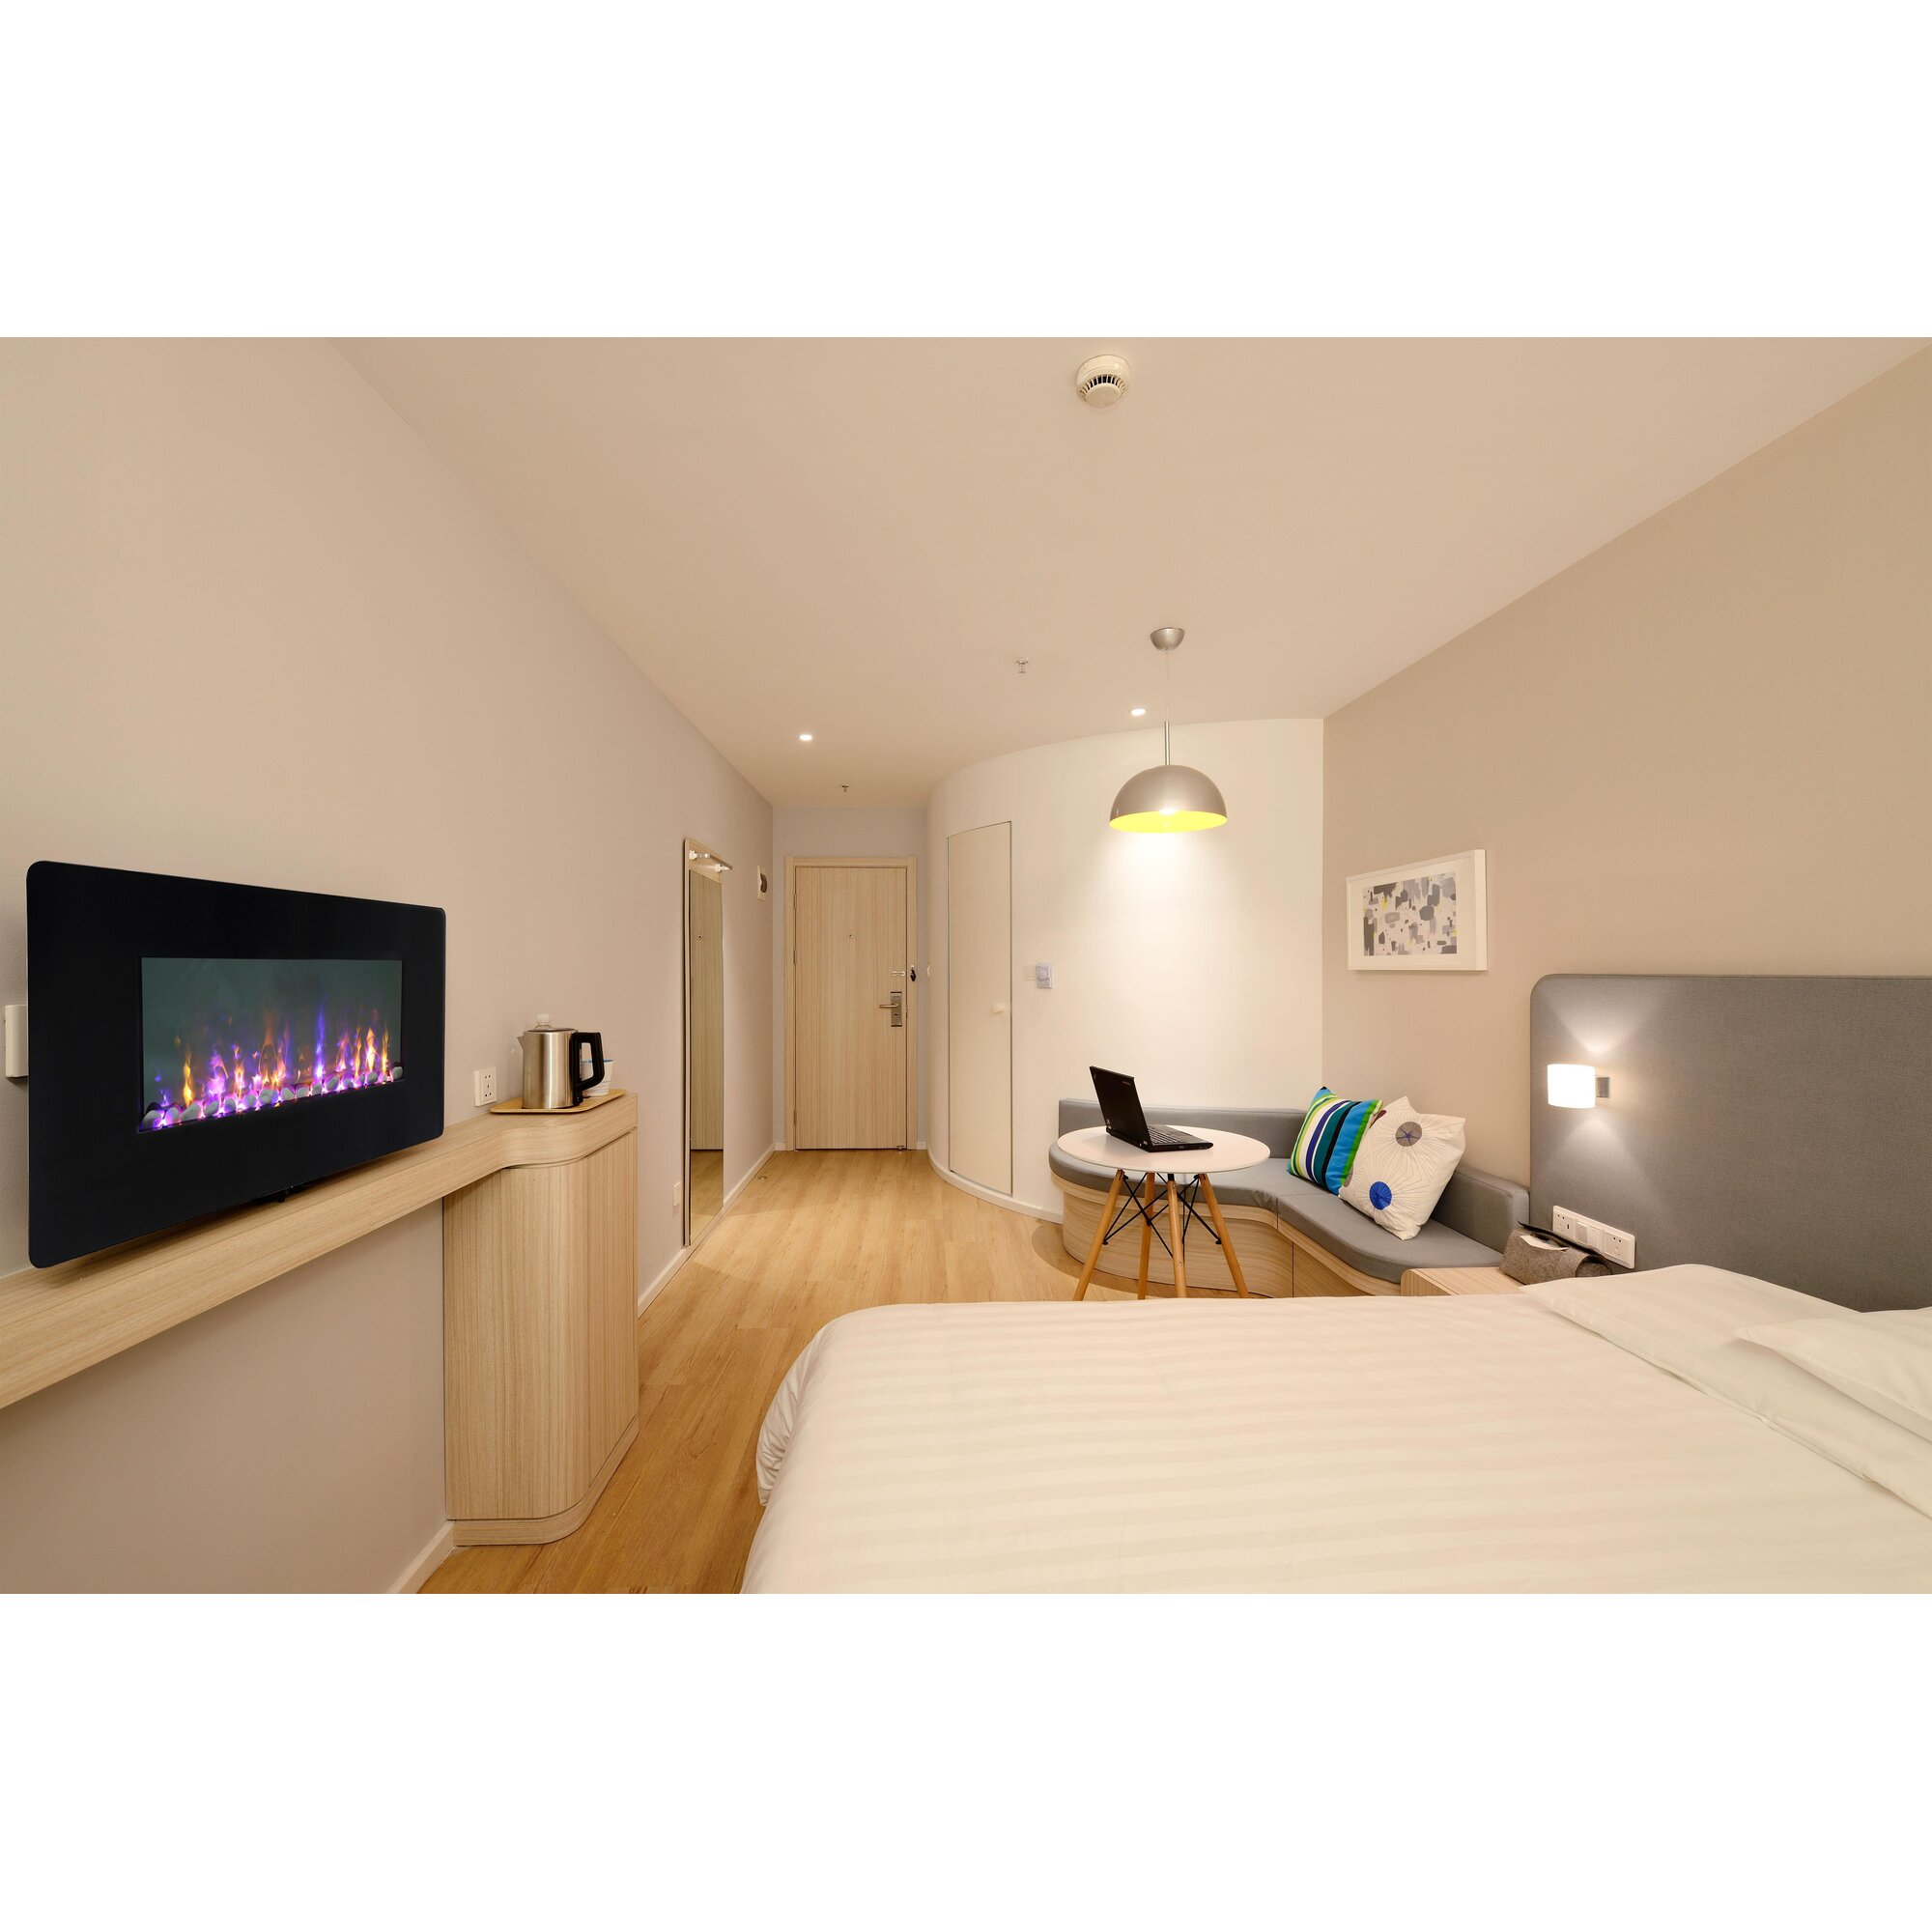 Bedroom electric fireplace - Wi Fi Smart Led Wall Mount Electric Fireplace